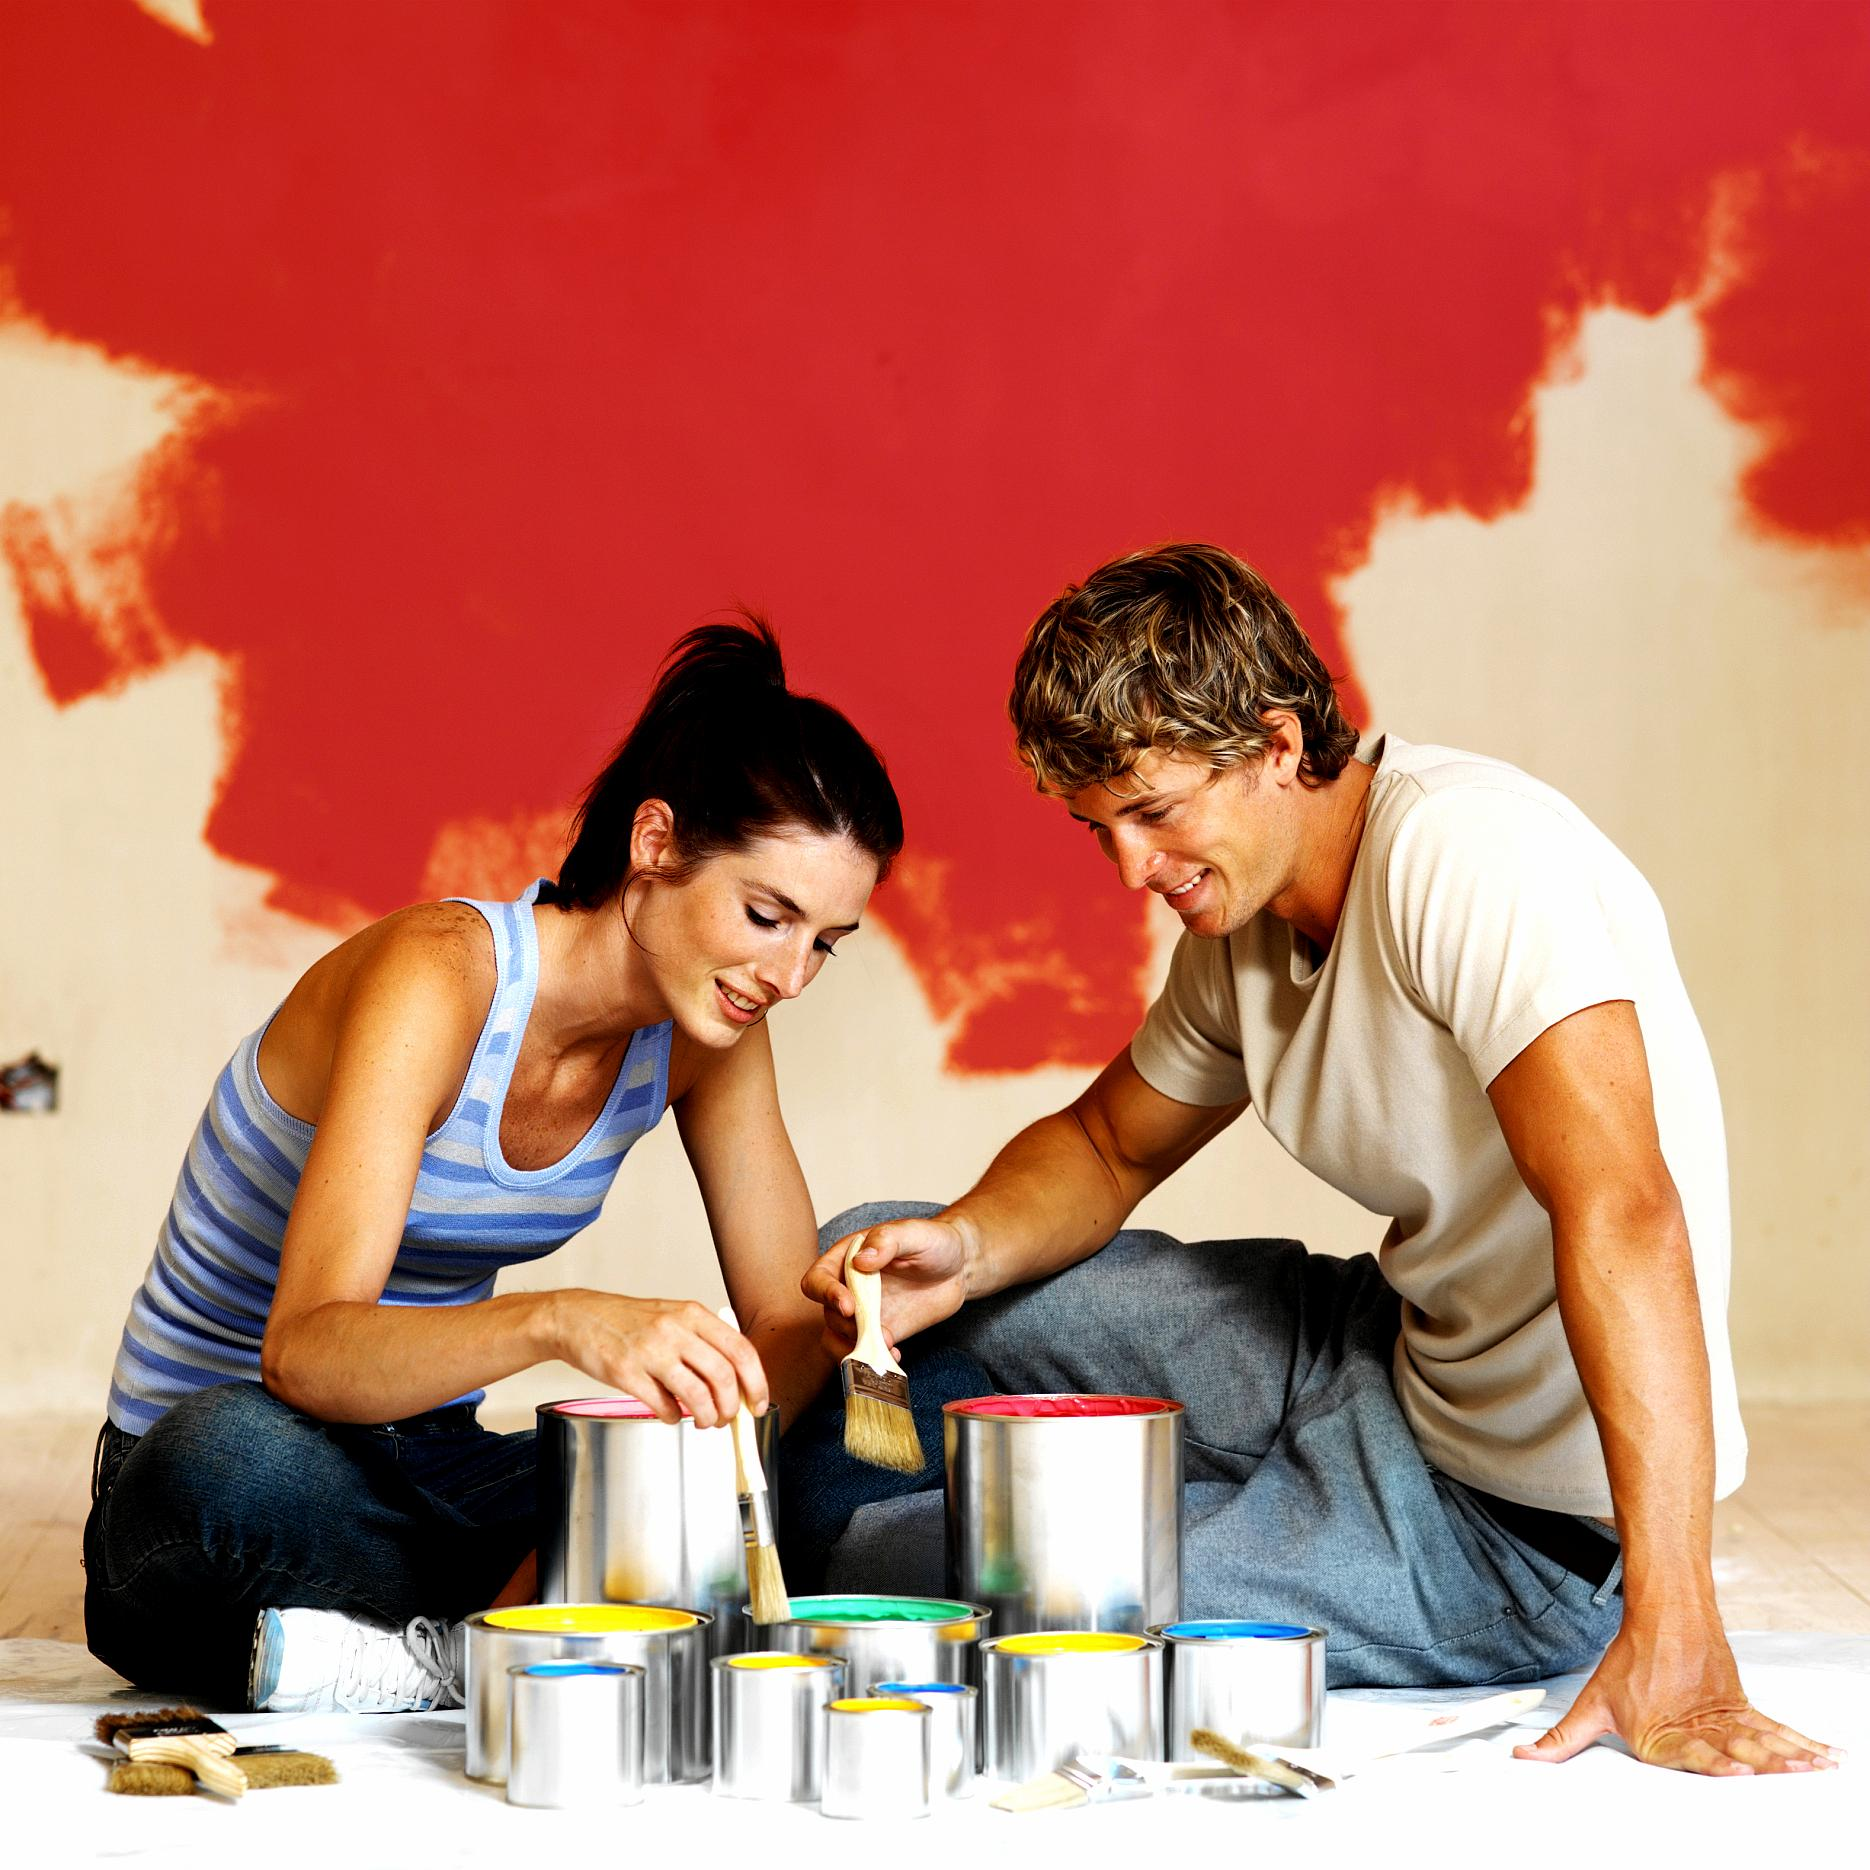 paint2 6 Super Simple Tips and Tricks for Painting at Home